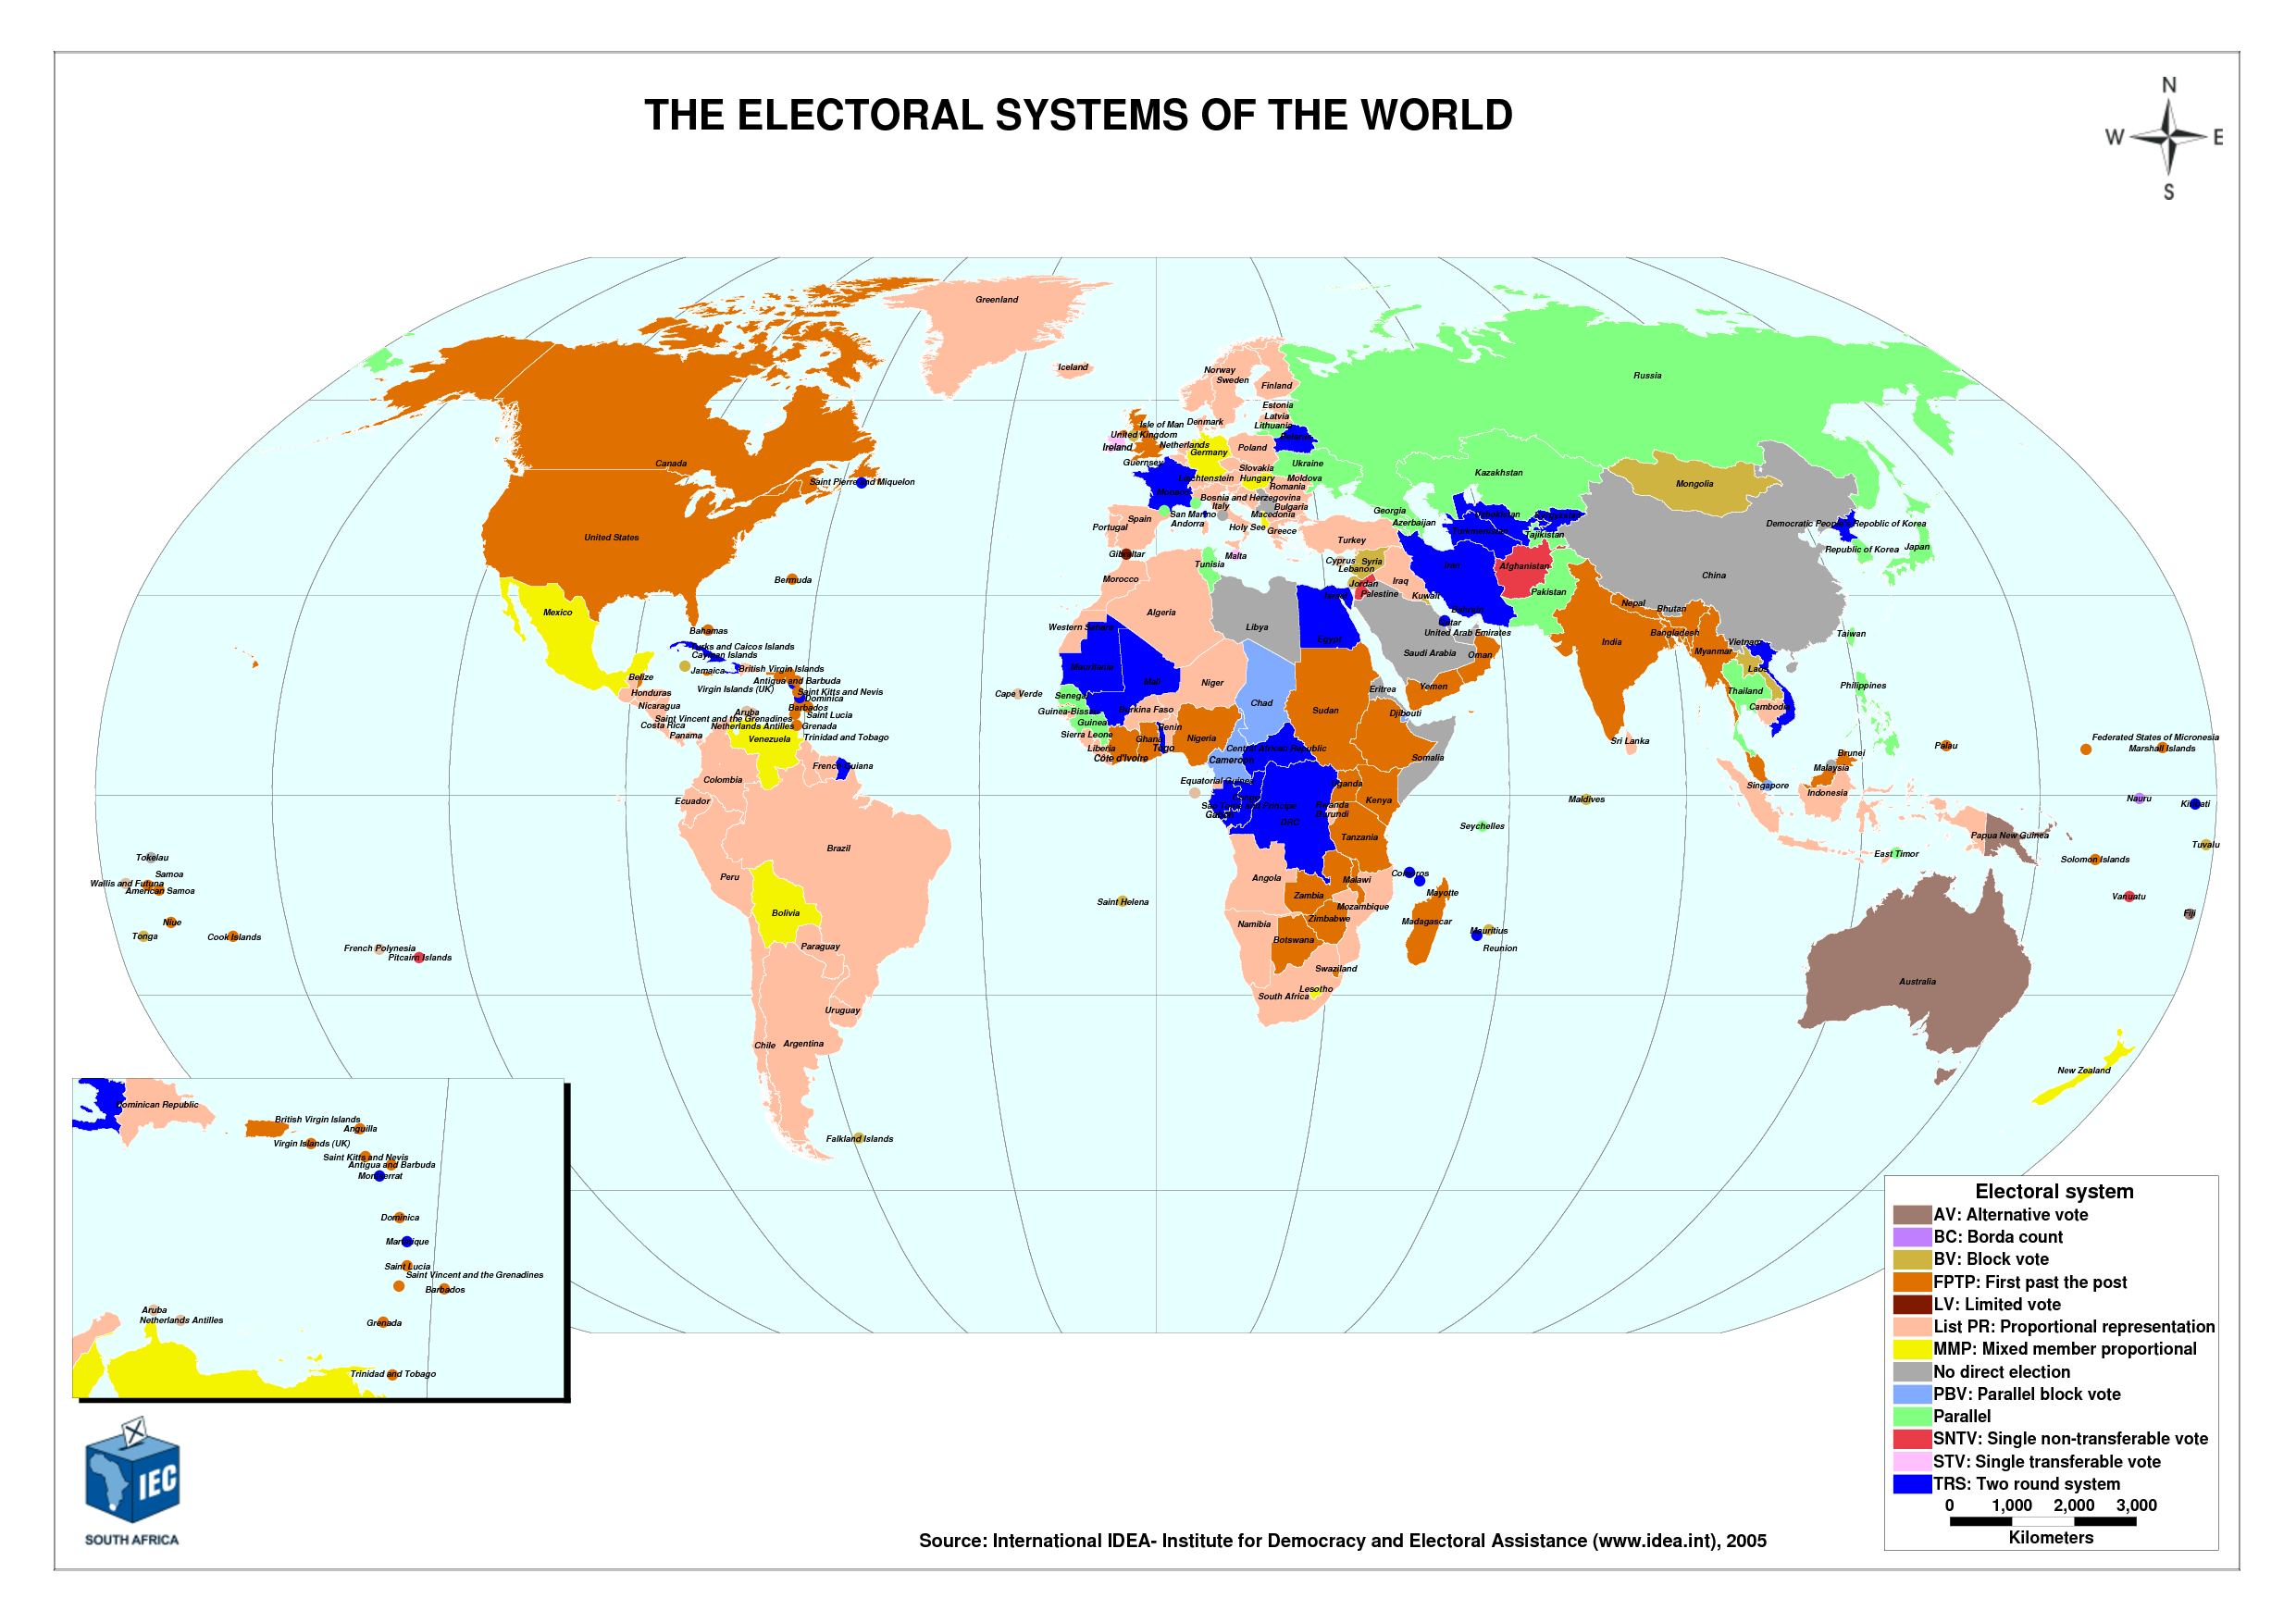 a comparison of the fptp and parallel electoral systems